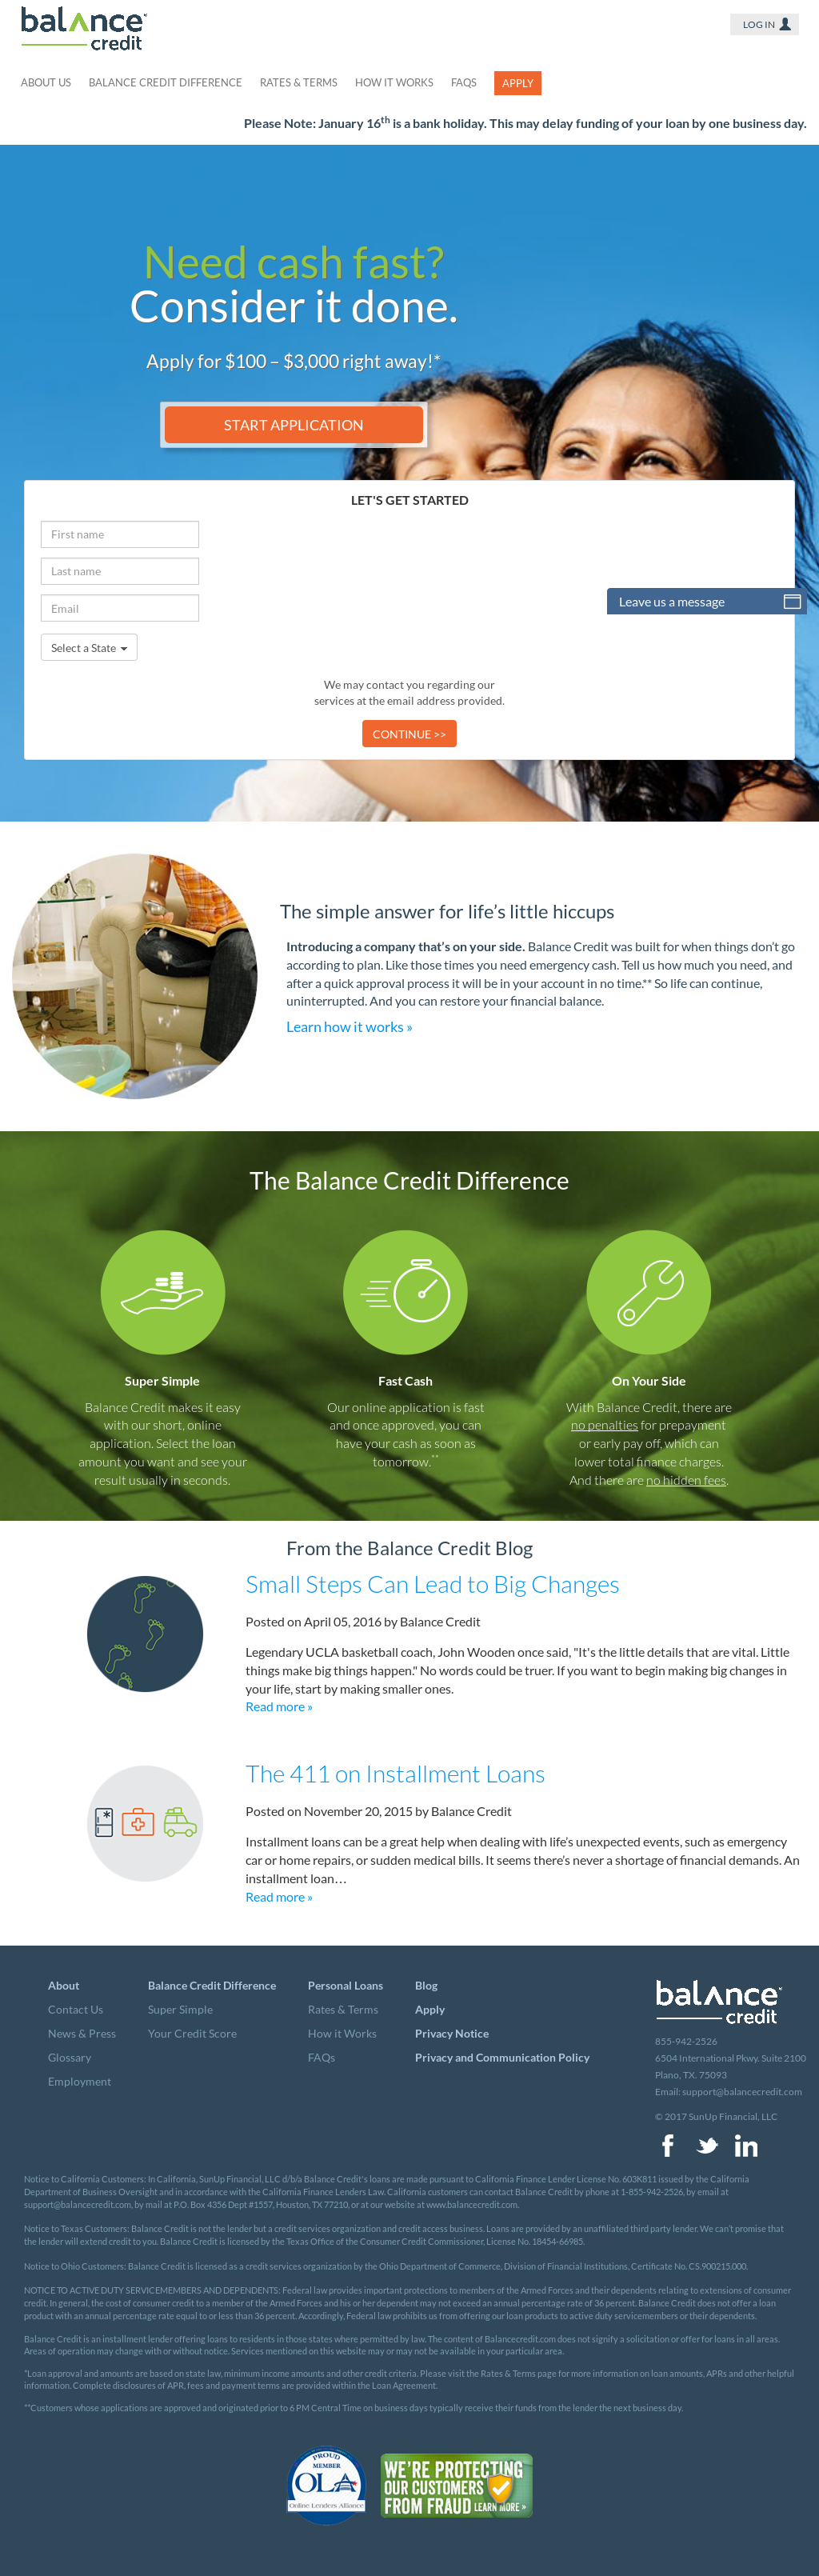 Balance Credit Competitors, Revenue and Employees - Owler